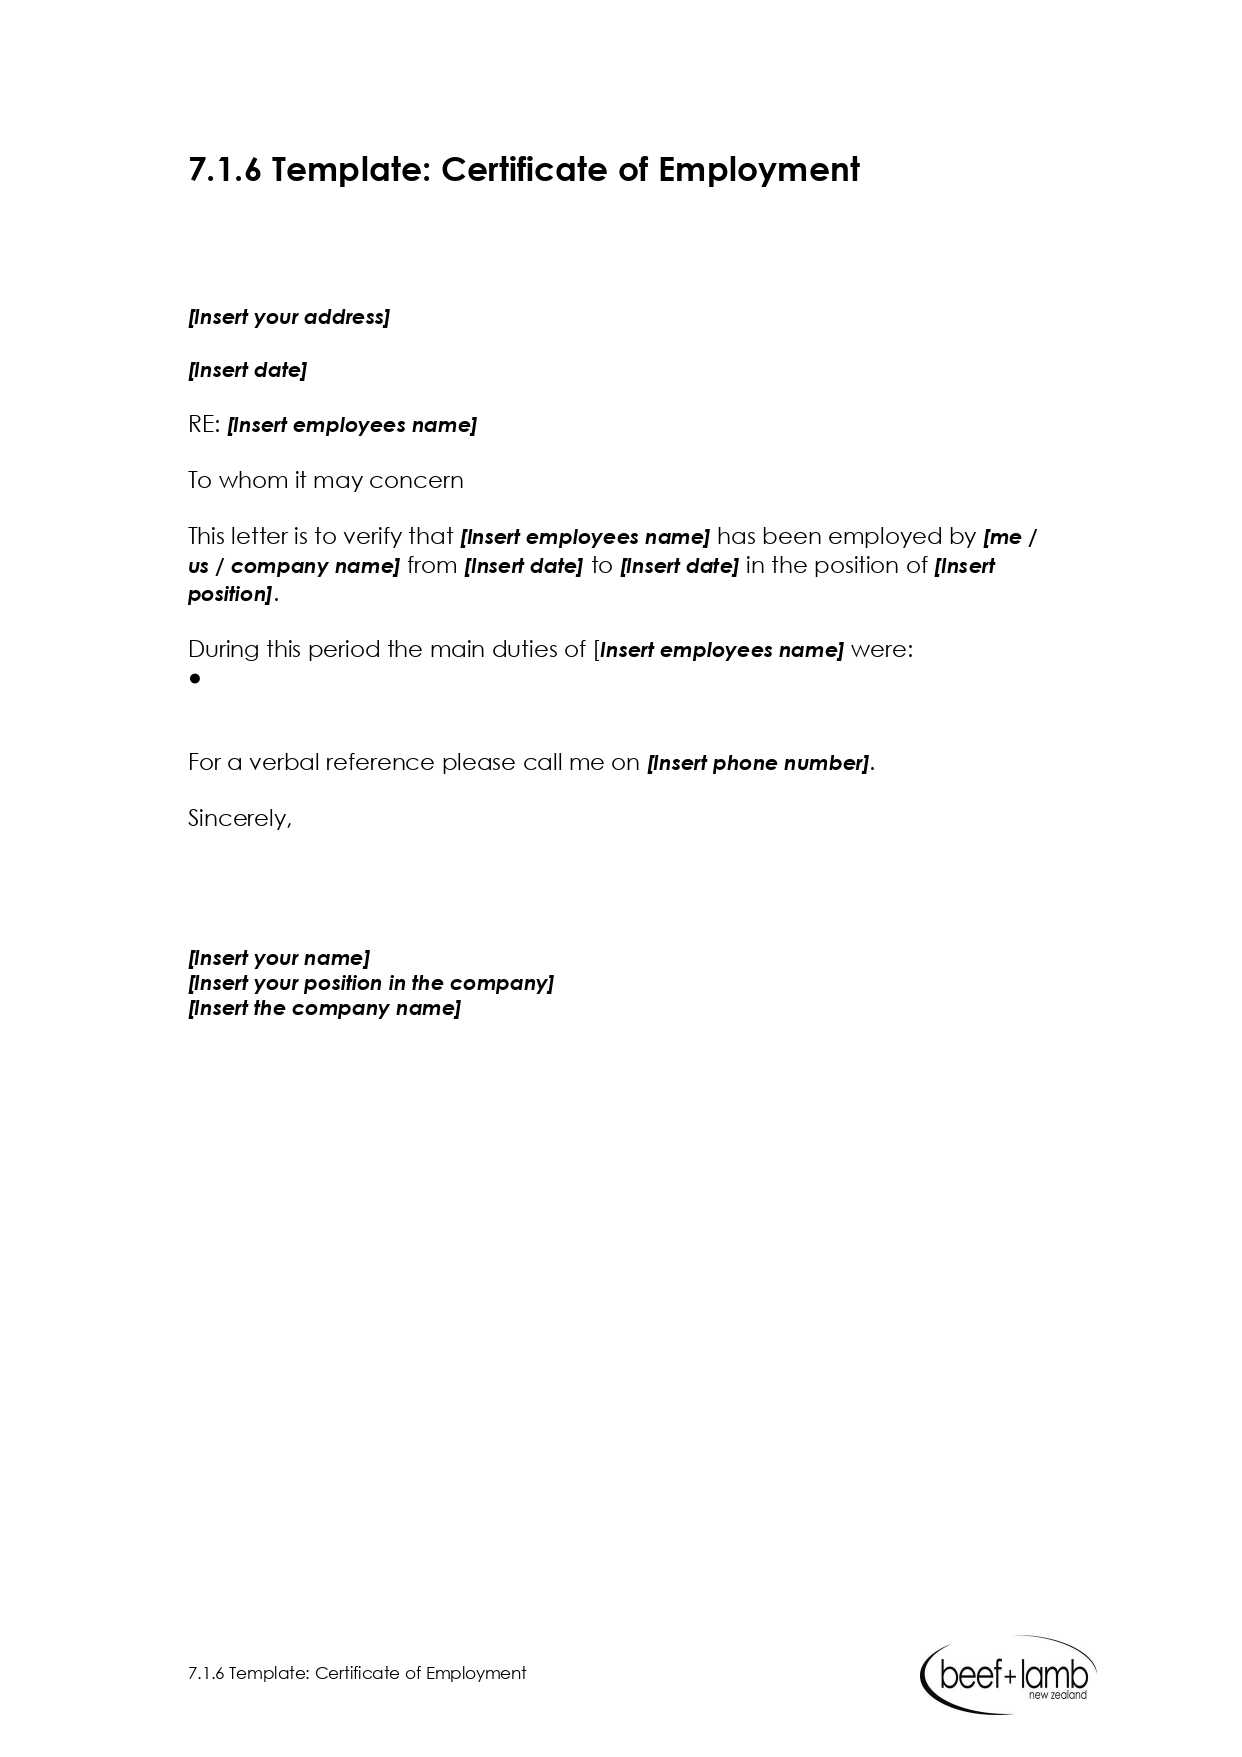 Editable Certificate Of Employment Template - Google Docs Inside Certificate Of Employment Template